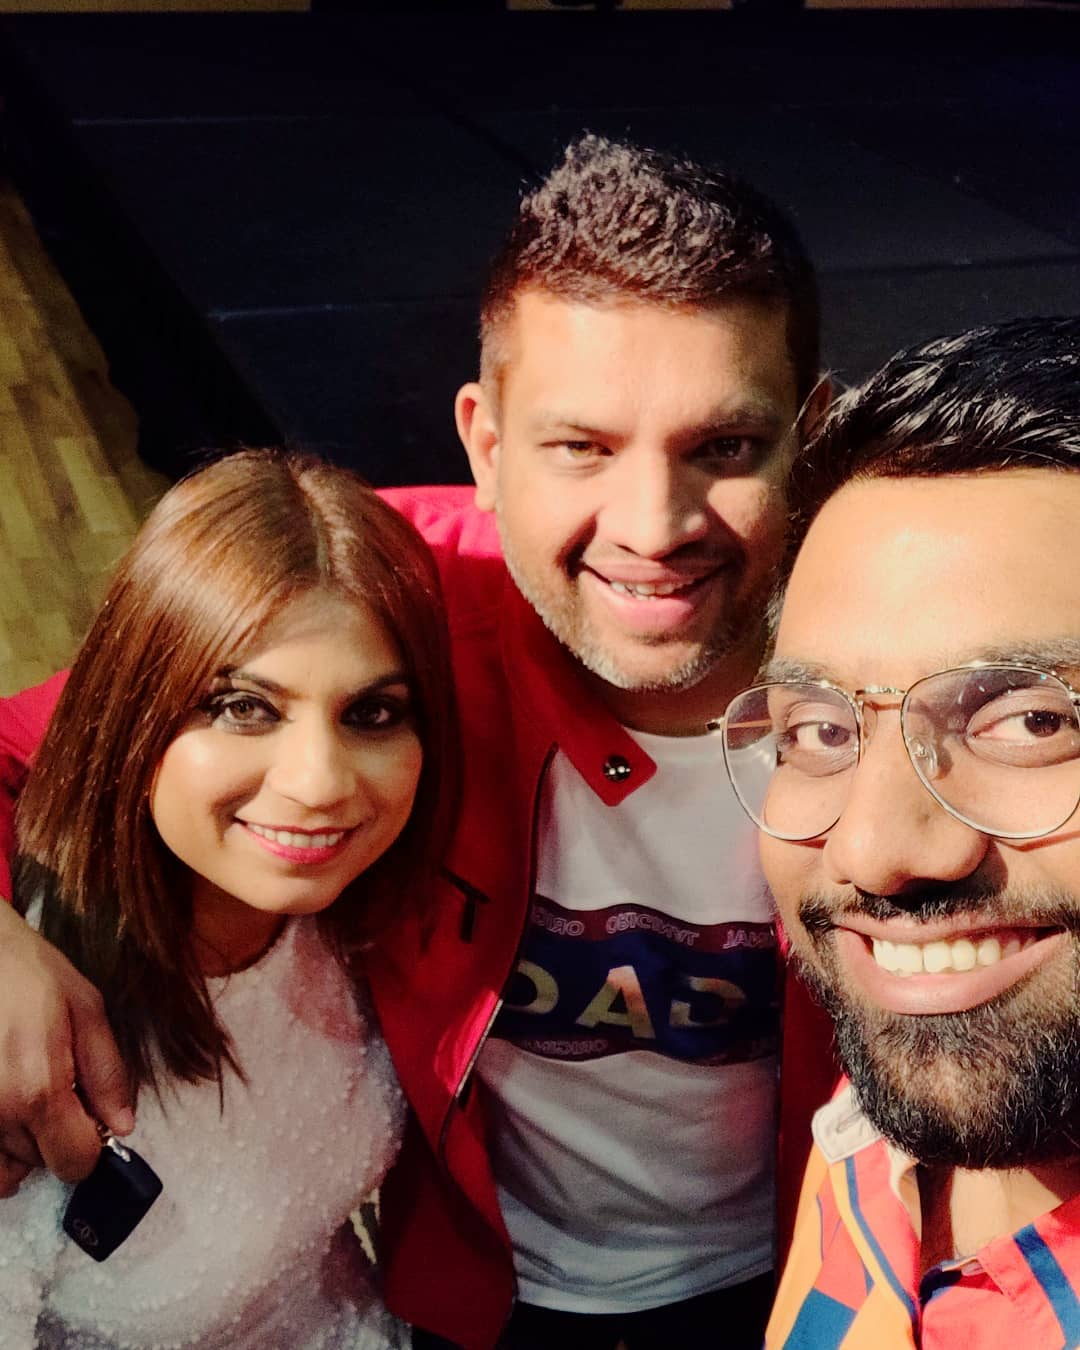 Always thankful to this lovely couple for hosting us in Australia. Thanks @chiragparikhofficial @foramparikh @star_alliance_entertainment for being so awesome like always.  #thecomedyfactory #AustraliaTour